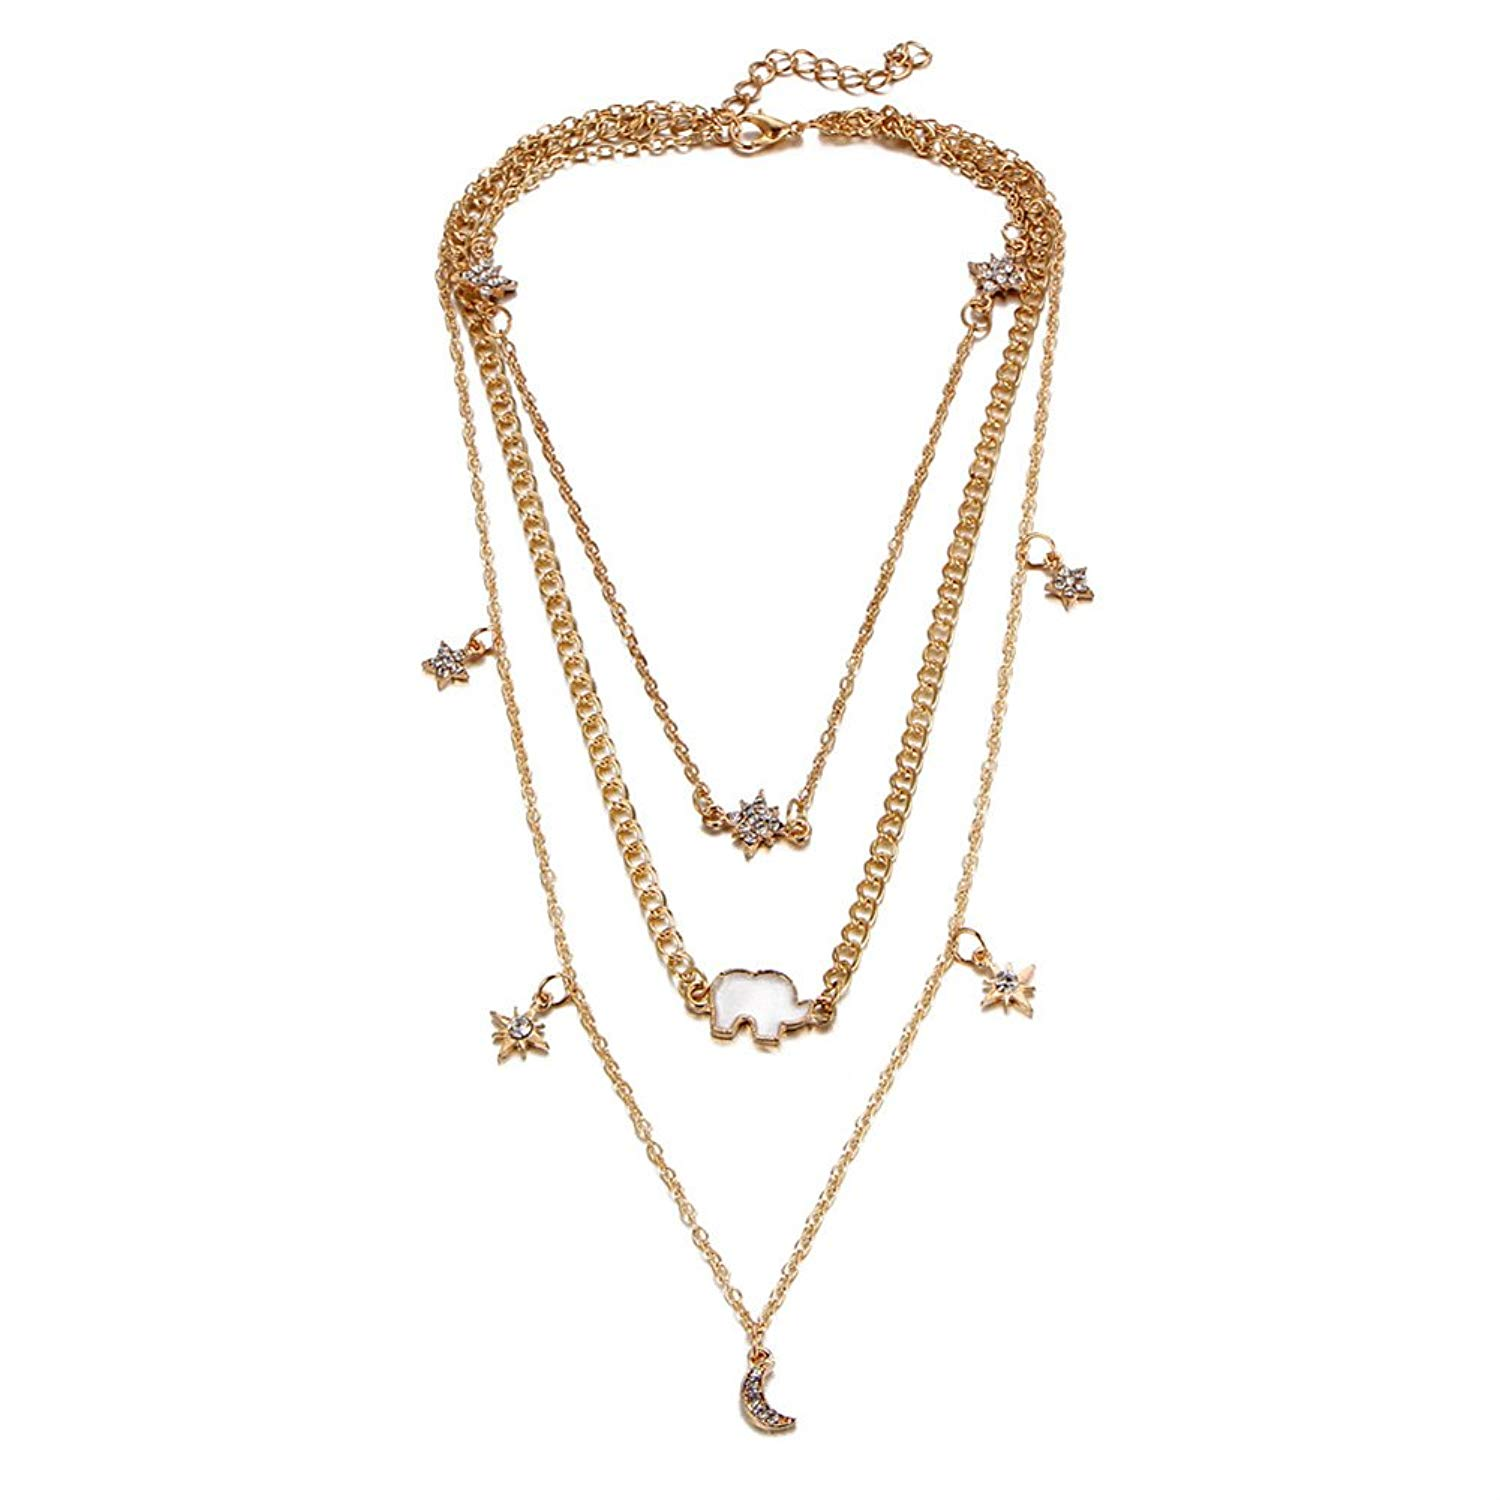 PORPI-JOJO Multi-layer Three Chain Necklace Moon Star and Elephant Lucky Pendant Summer Beach Jewelry Gold Plated